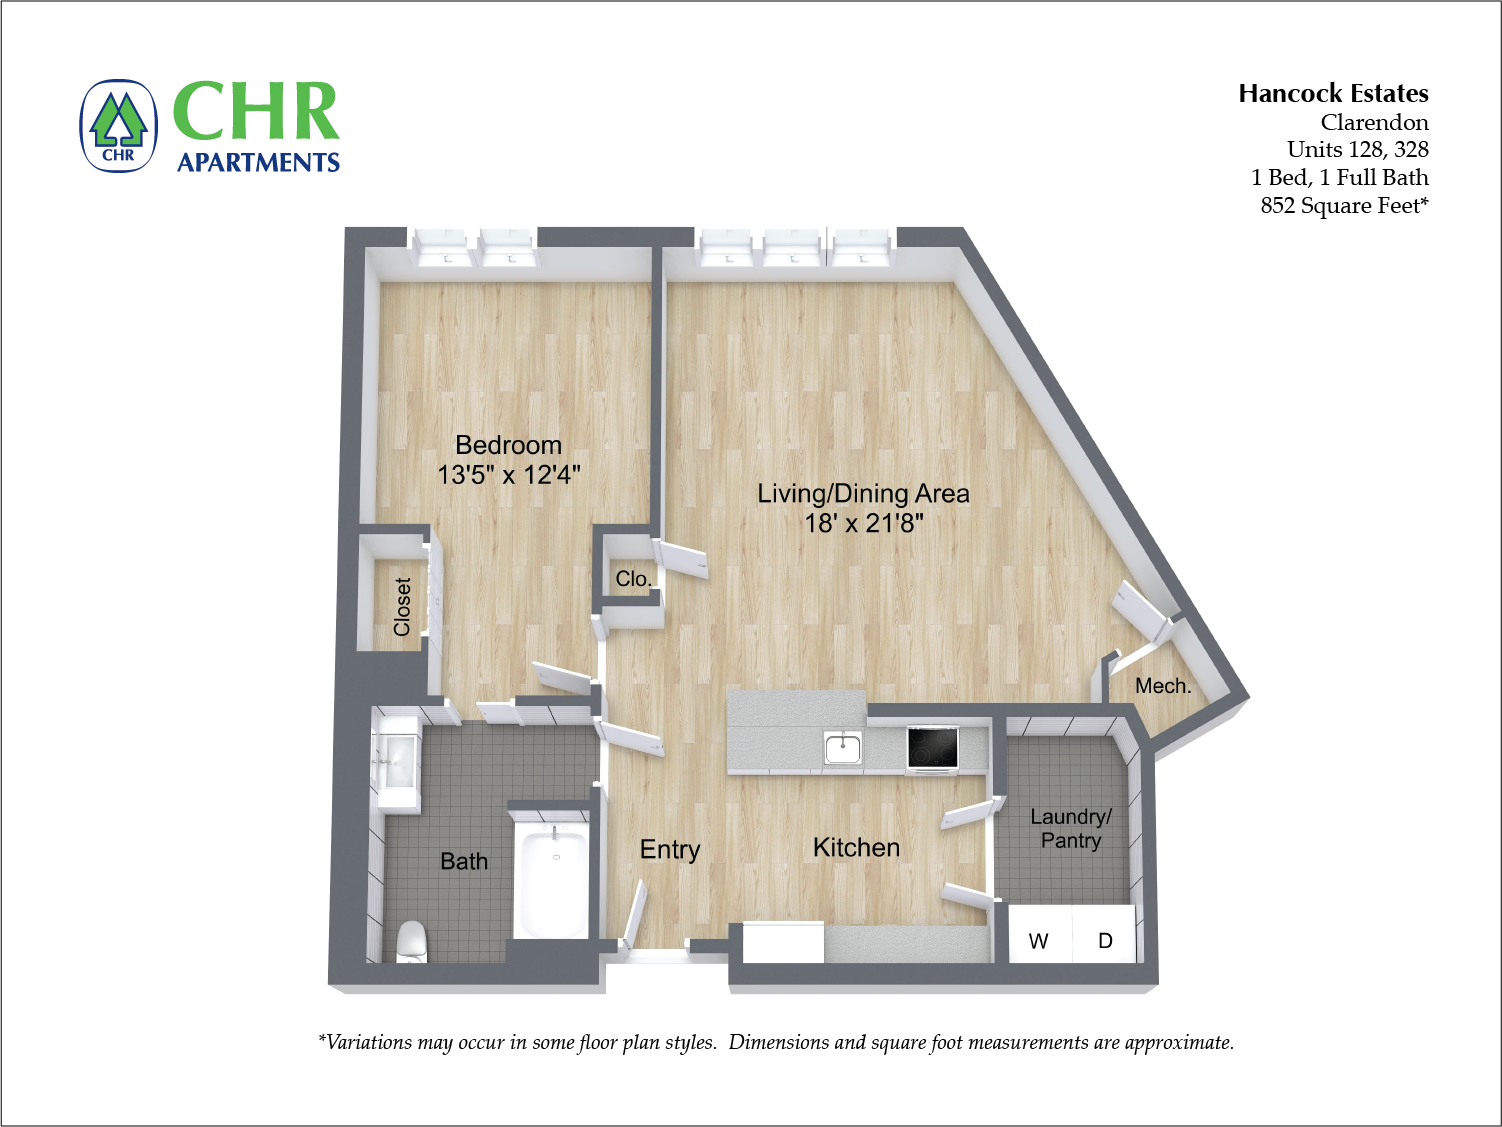 Click to view 1 BR 1 BA floor plan gallery